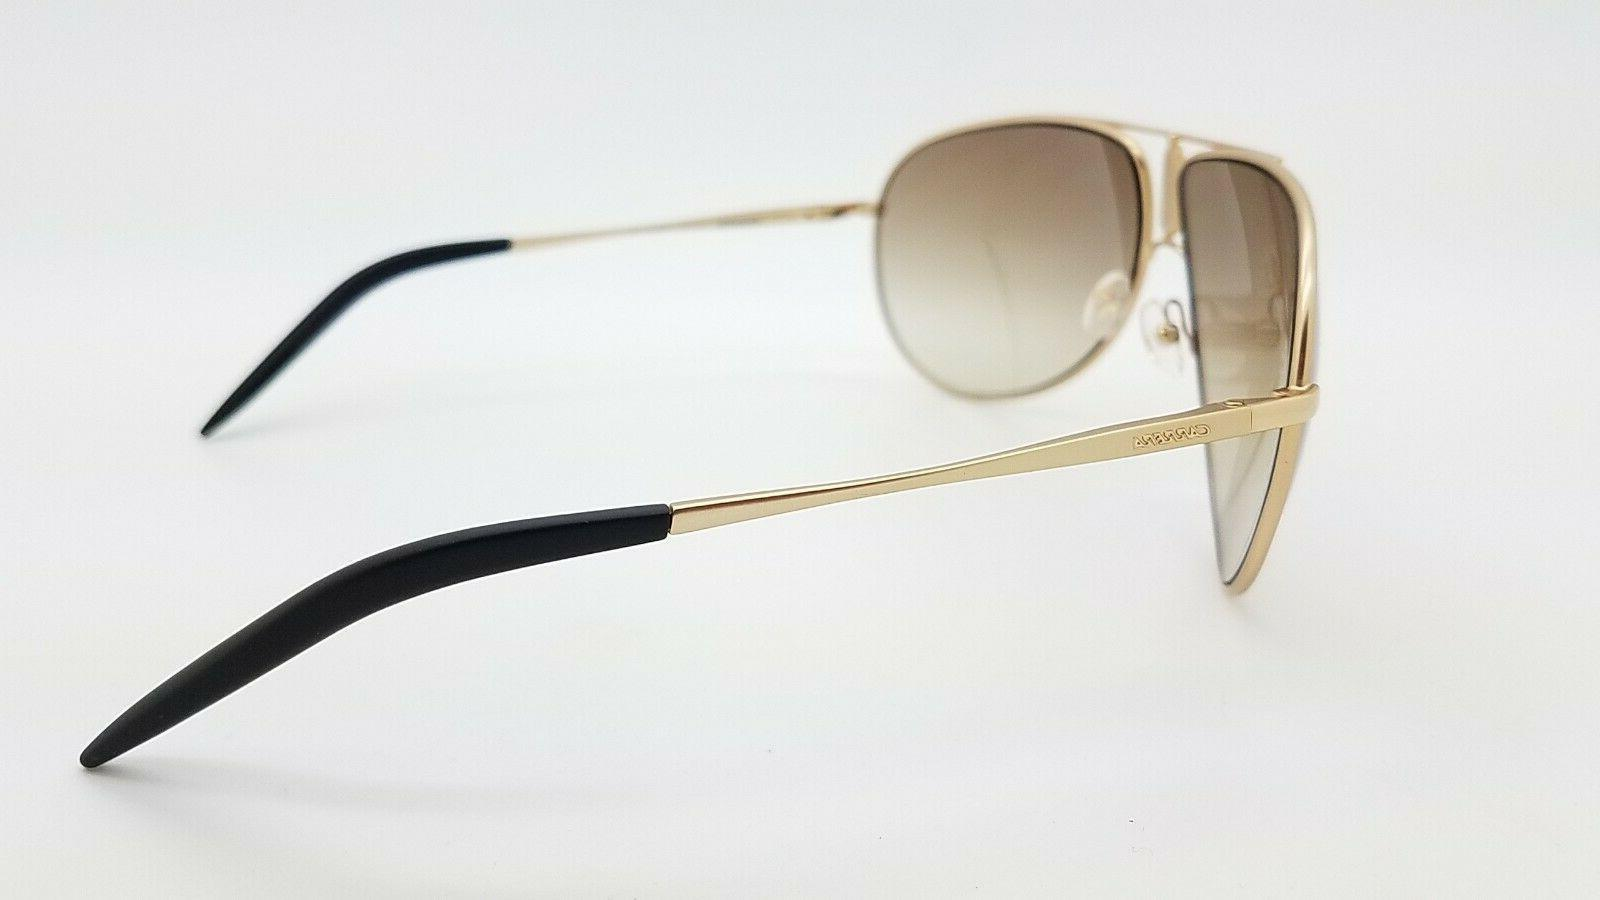 NEW sunglasses Gypsy Gold Brown